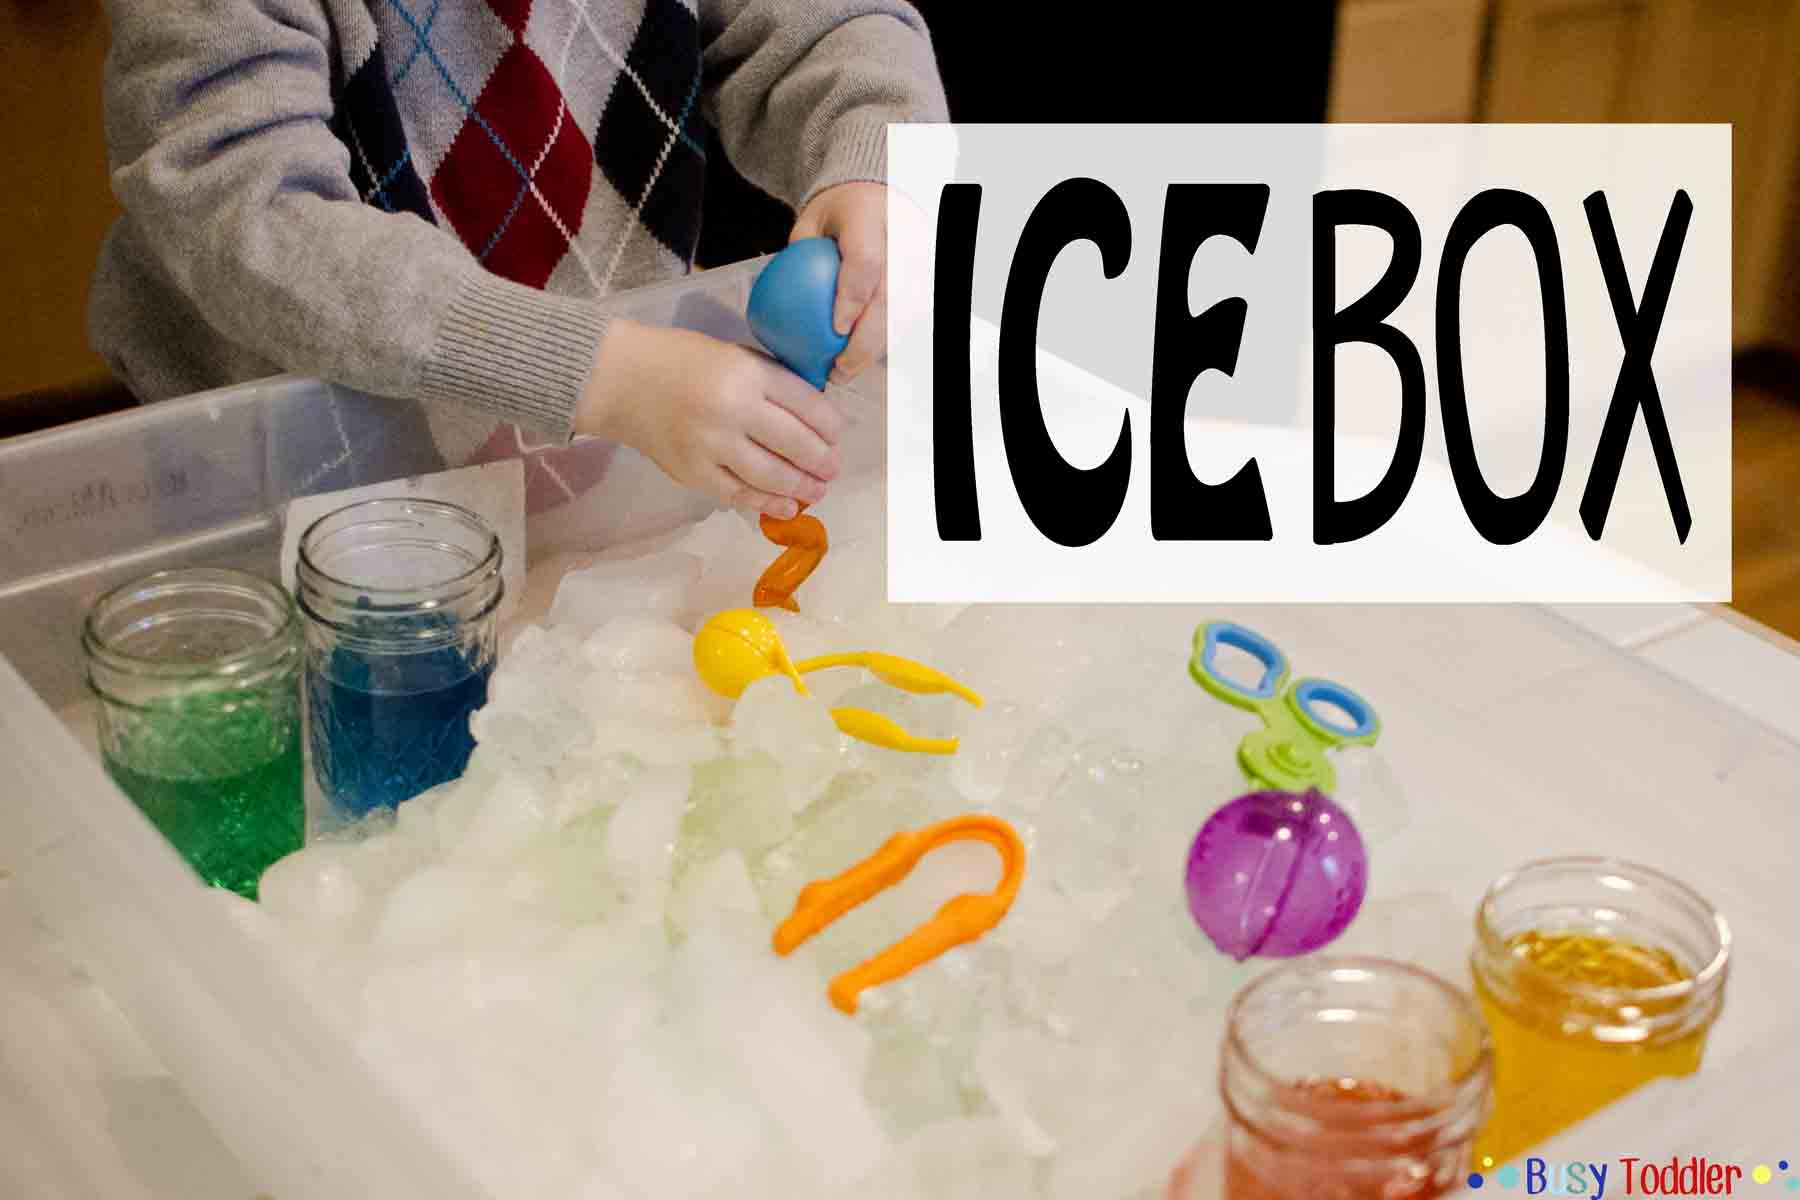 ICE BOX: A no cost toddler activity